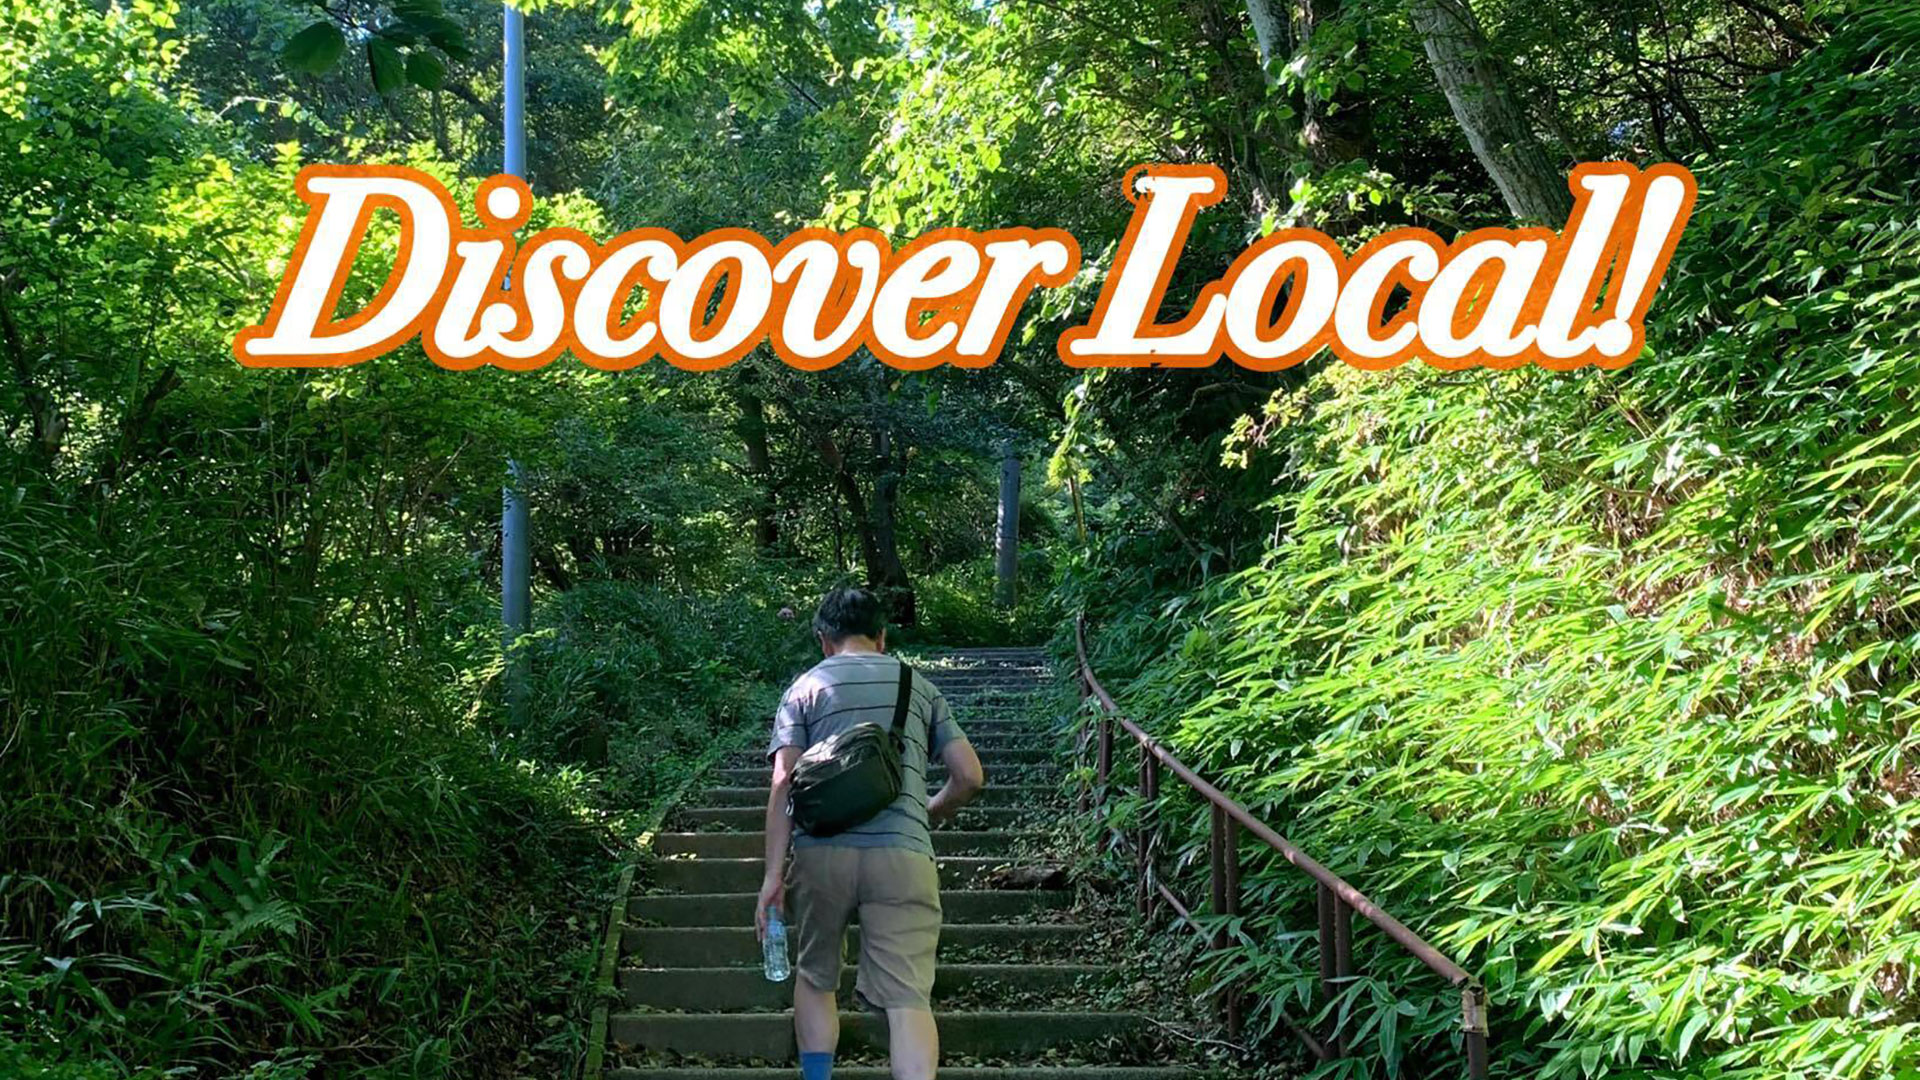 Discover Local!